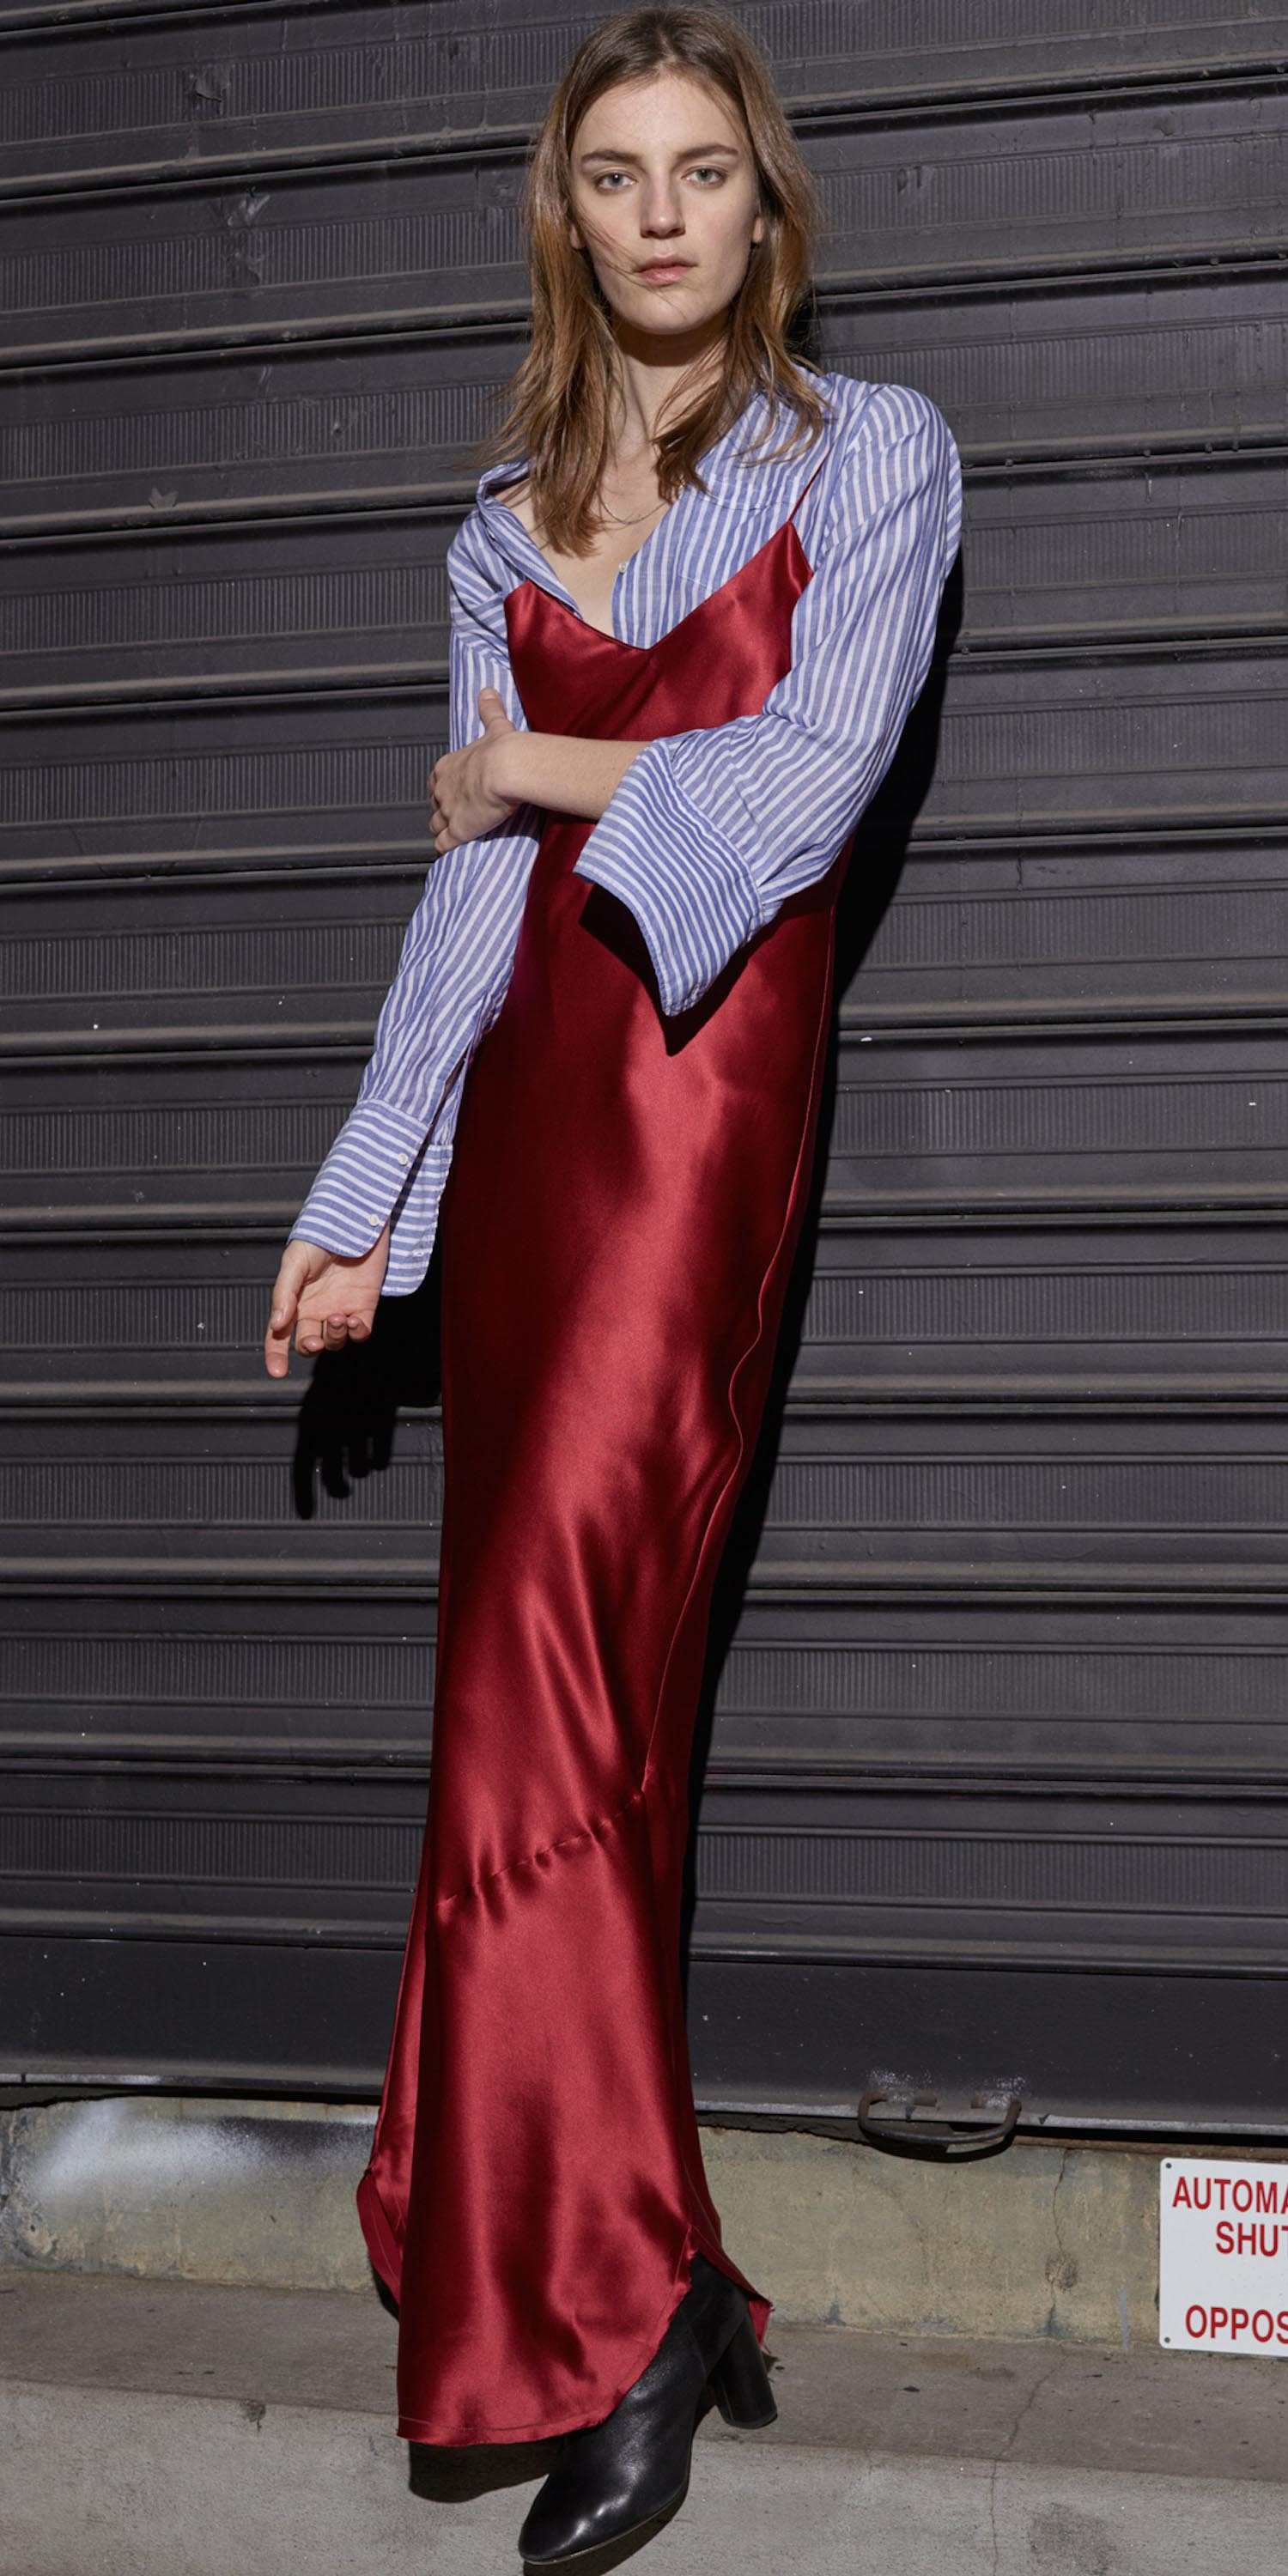 red-dress-slip-maxi-blue-med-collared-shirt-vertical-stripe-black-shoe-booties-howtowear-fall-winter-hairr-lunch.jpg